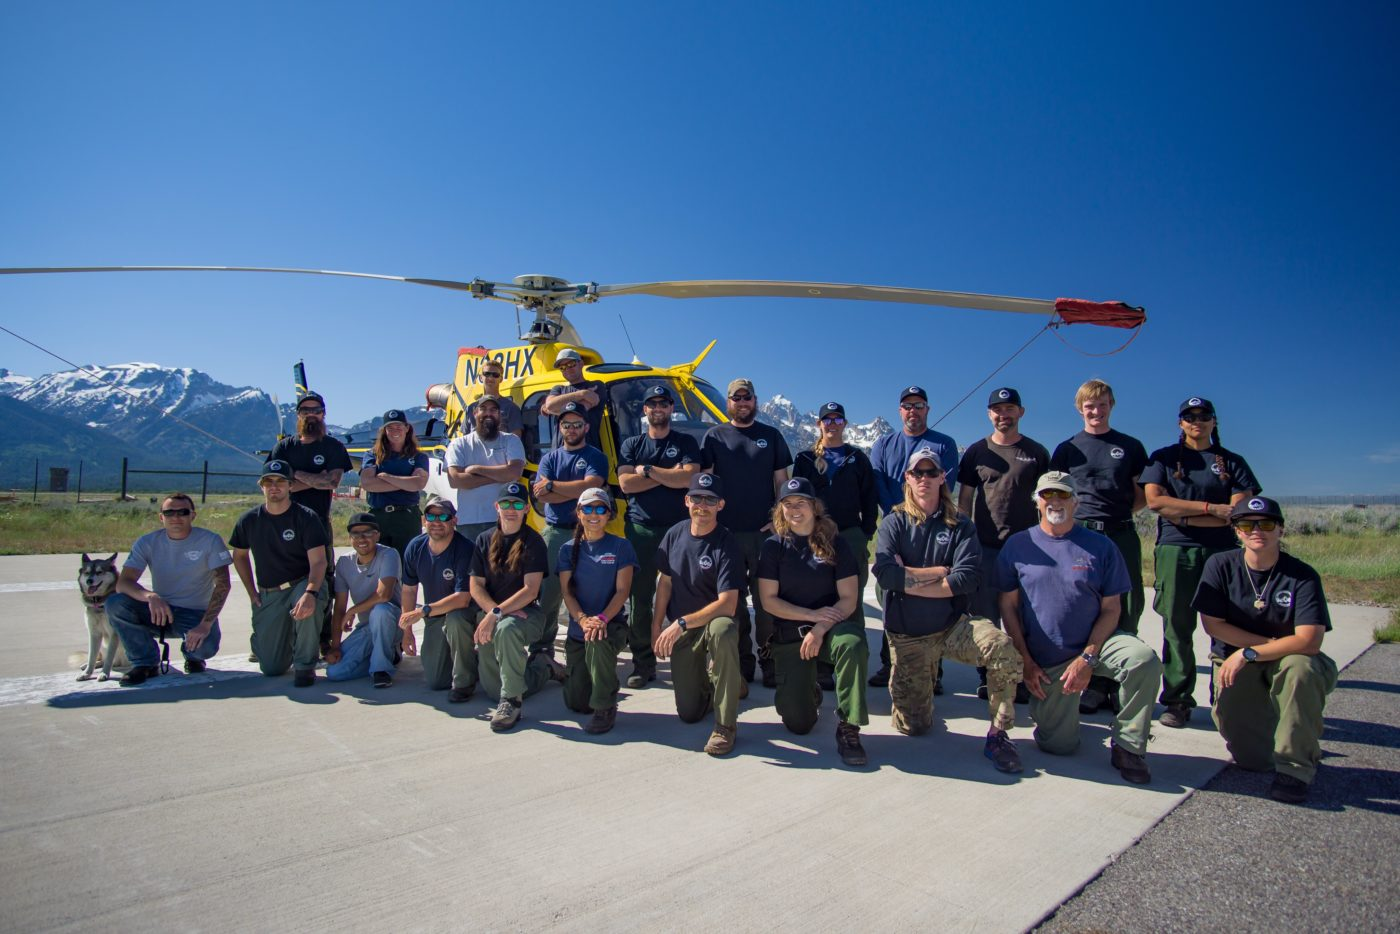 Group photo of the Teton helitack crew with a helicopter